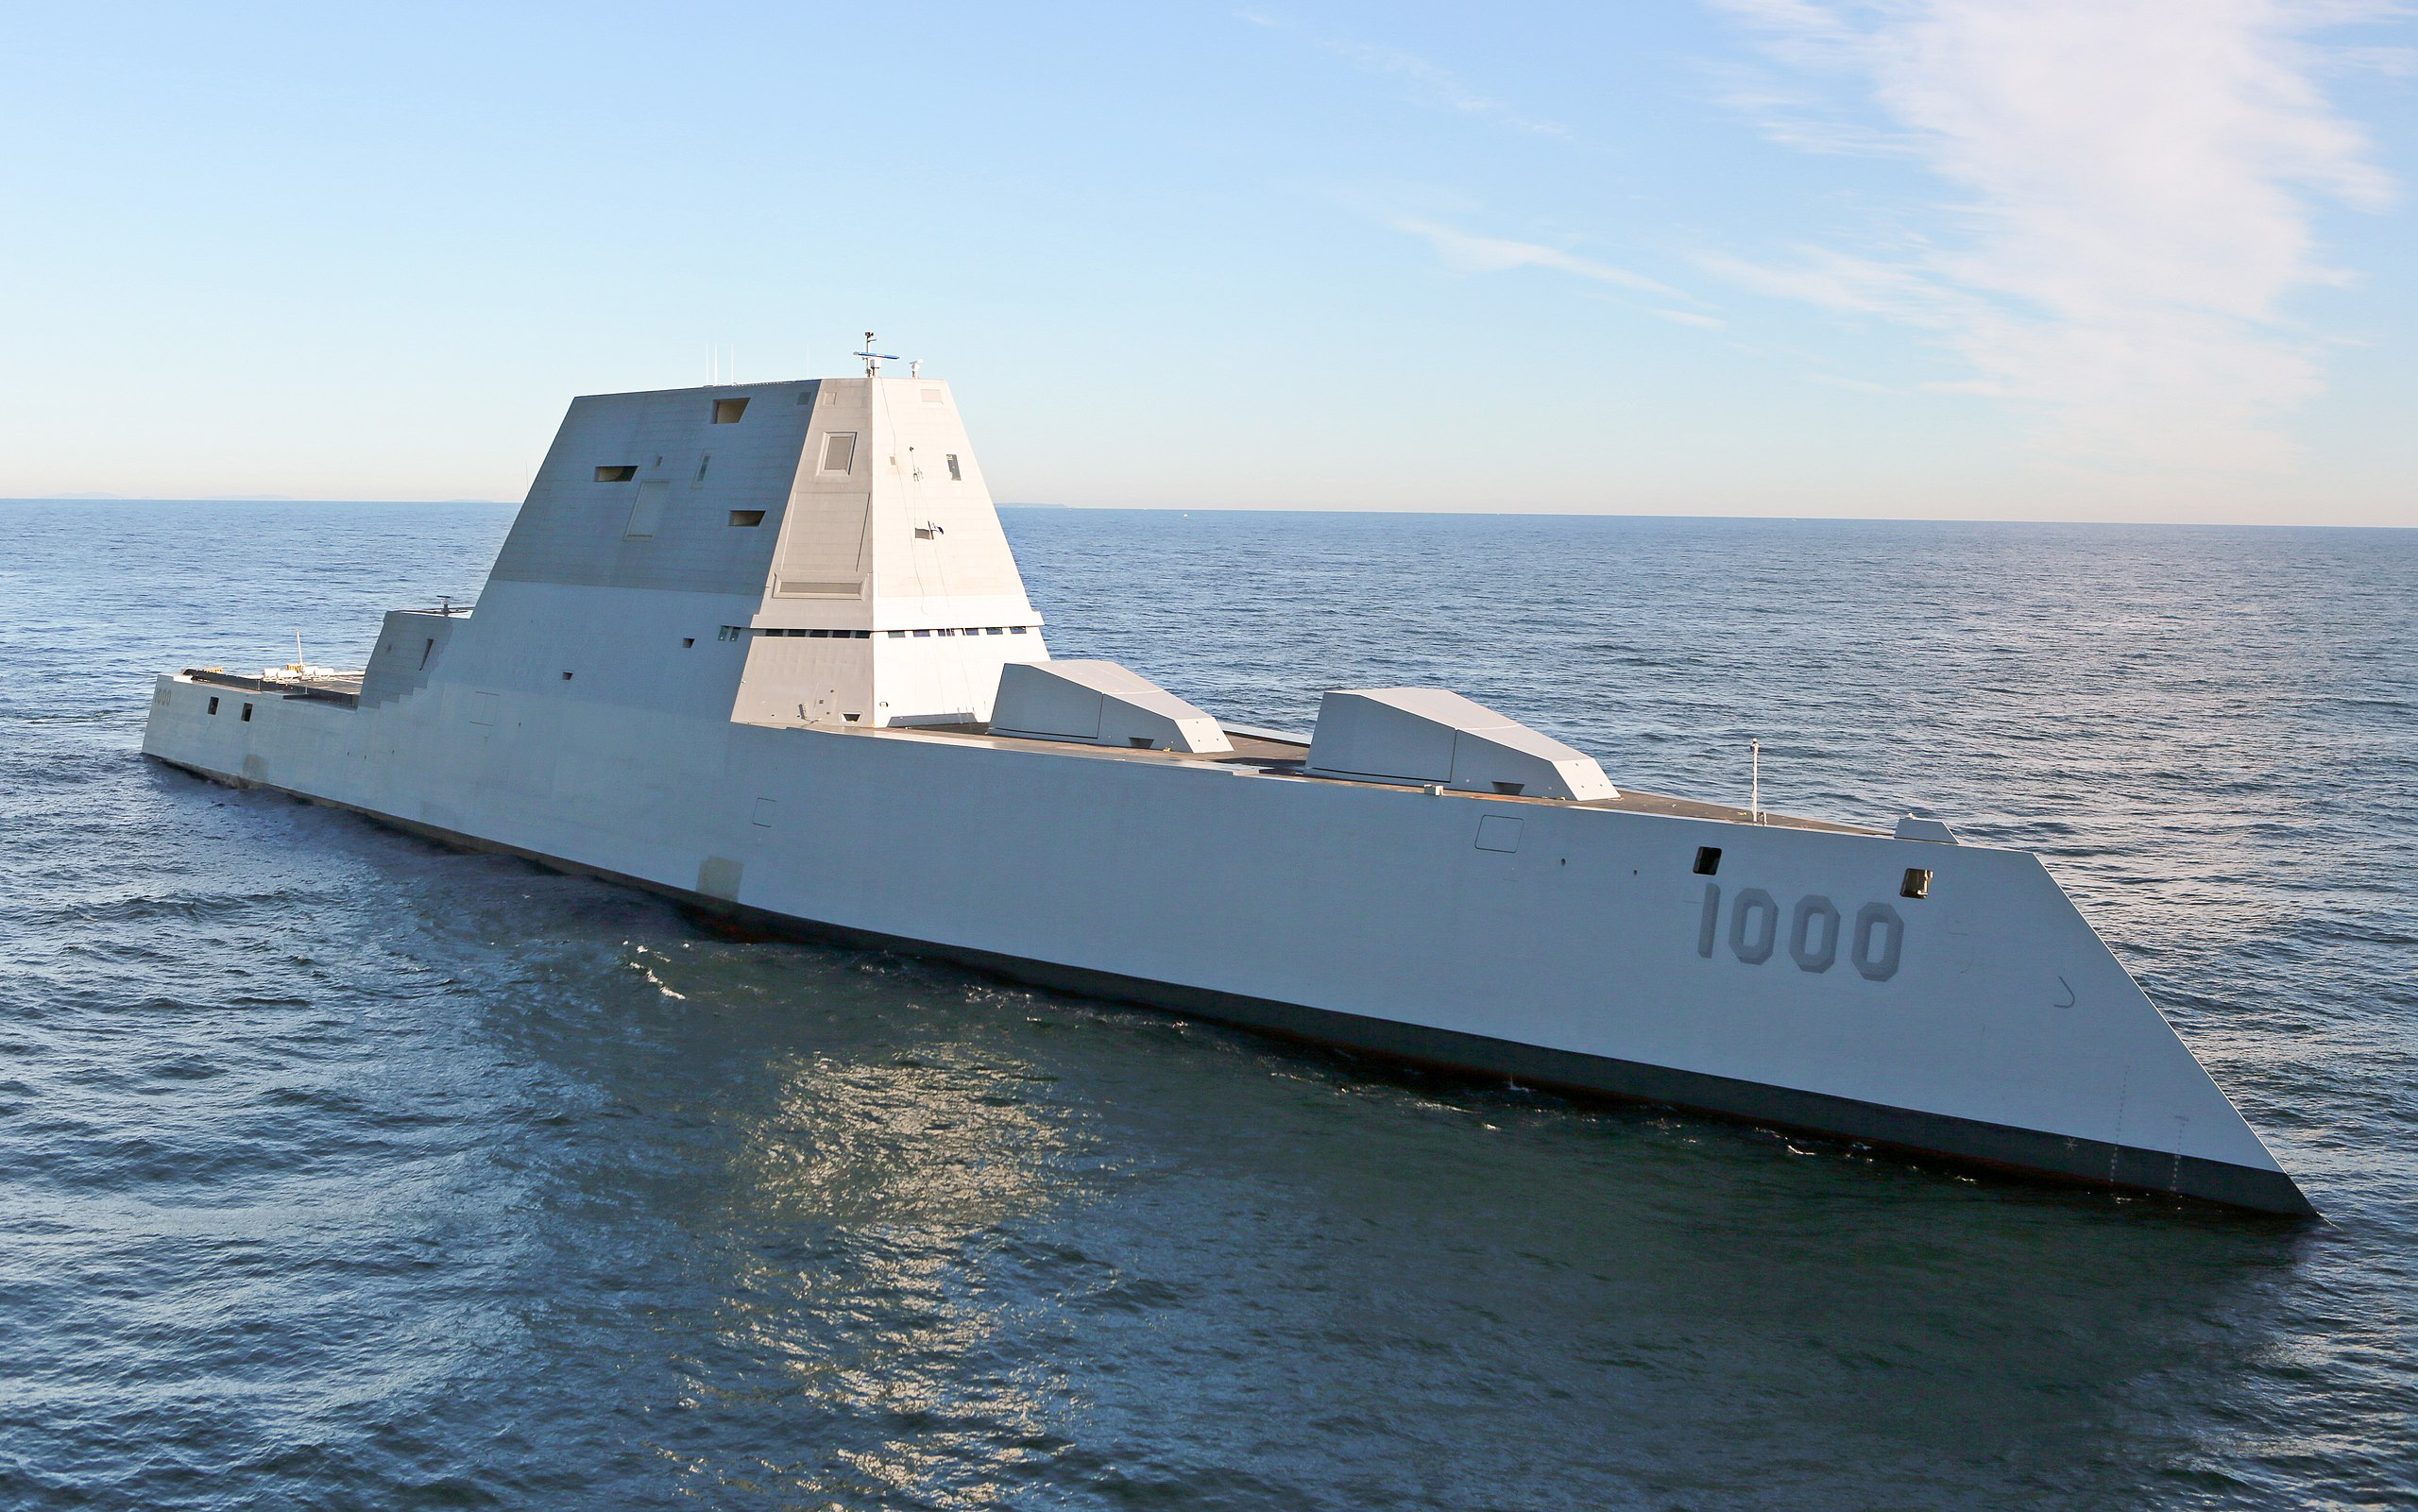 2560px-Future_USS_Zumwalt%27s_first_underway_at_sea.jpg